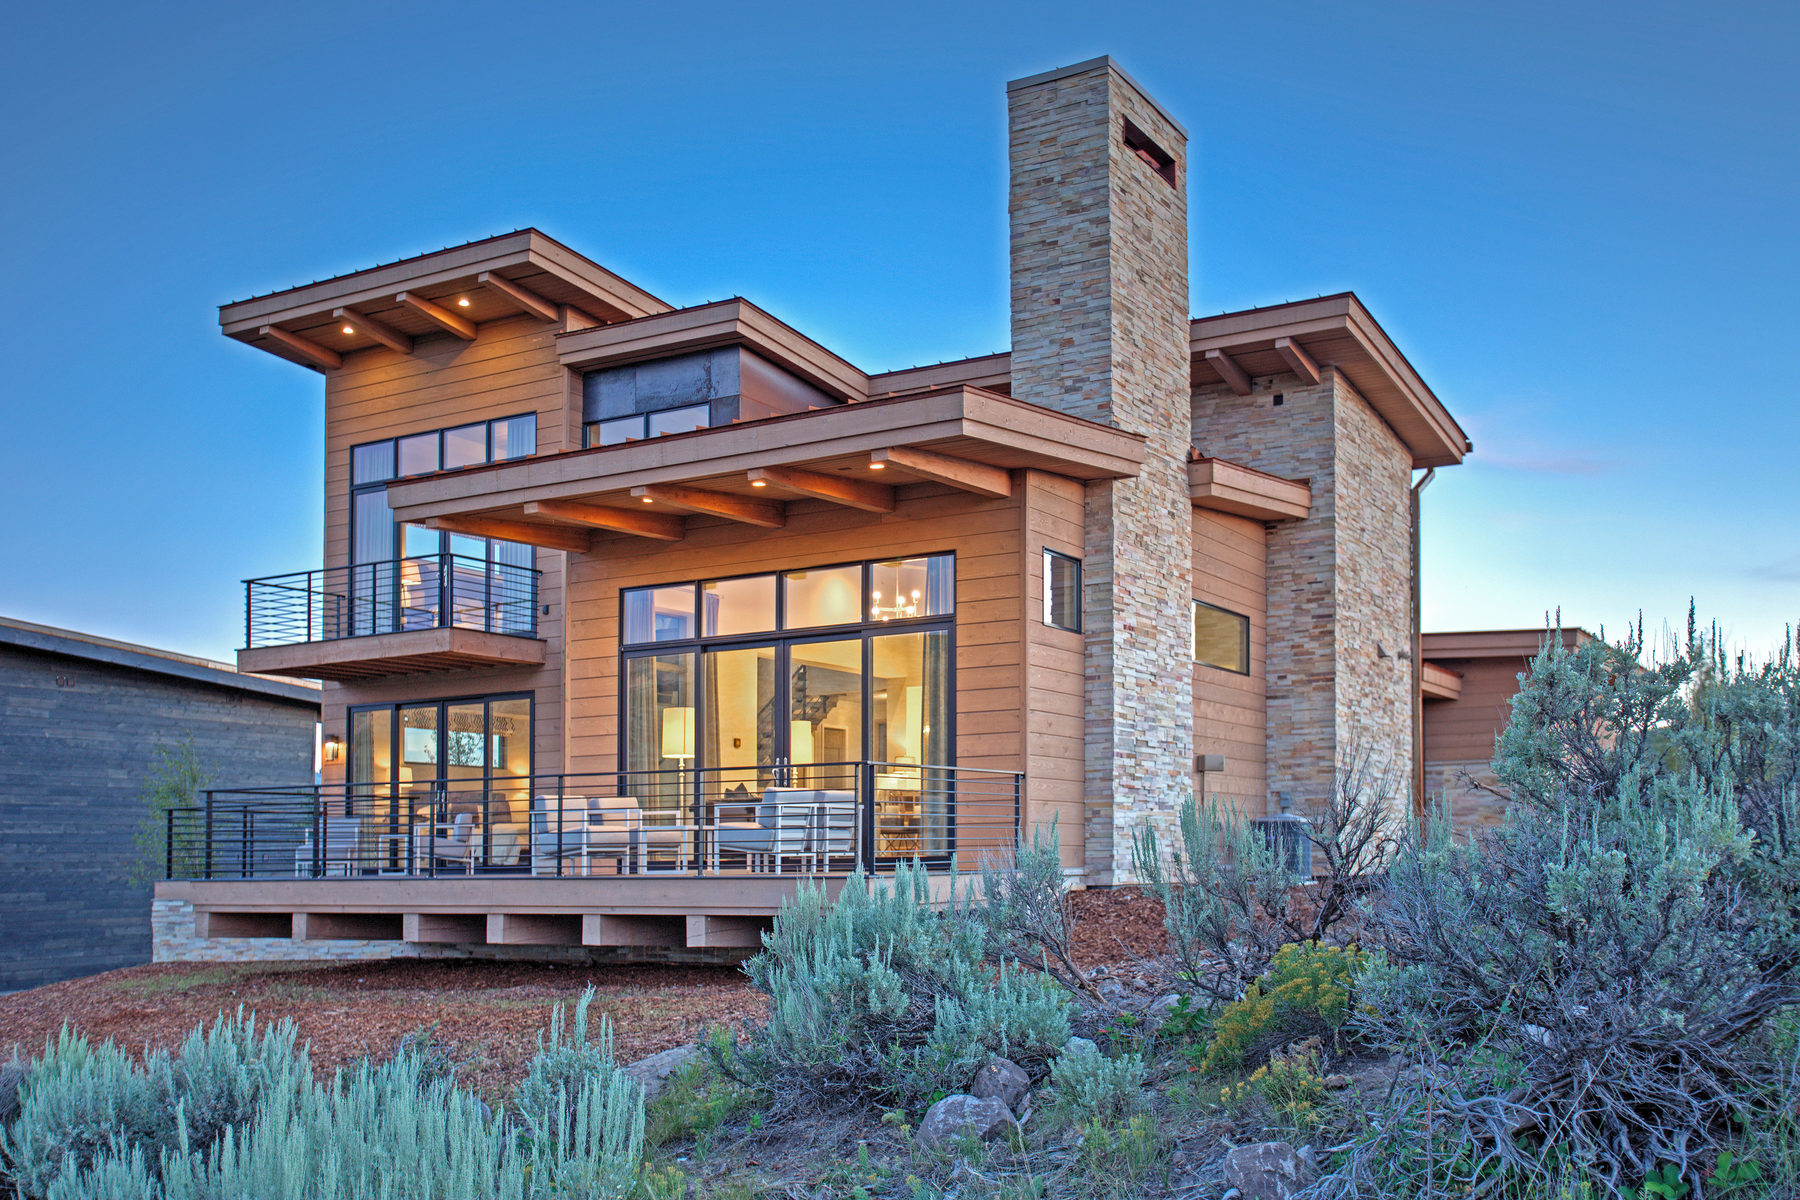 Single Family Home for Sale at New Nicklaus Golf Cabin In Promontory 6614 Golden Bear Loop West Park City, Utah, 84098 United States